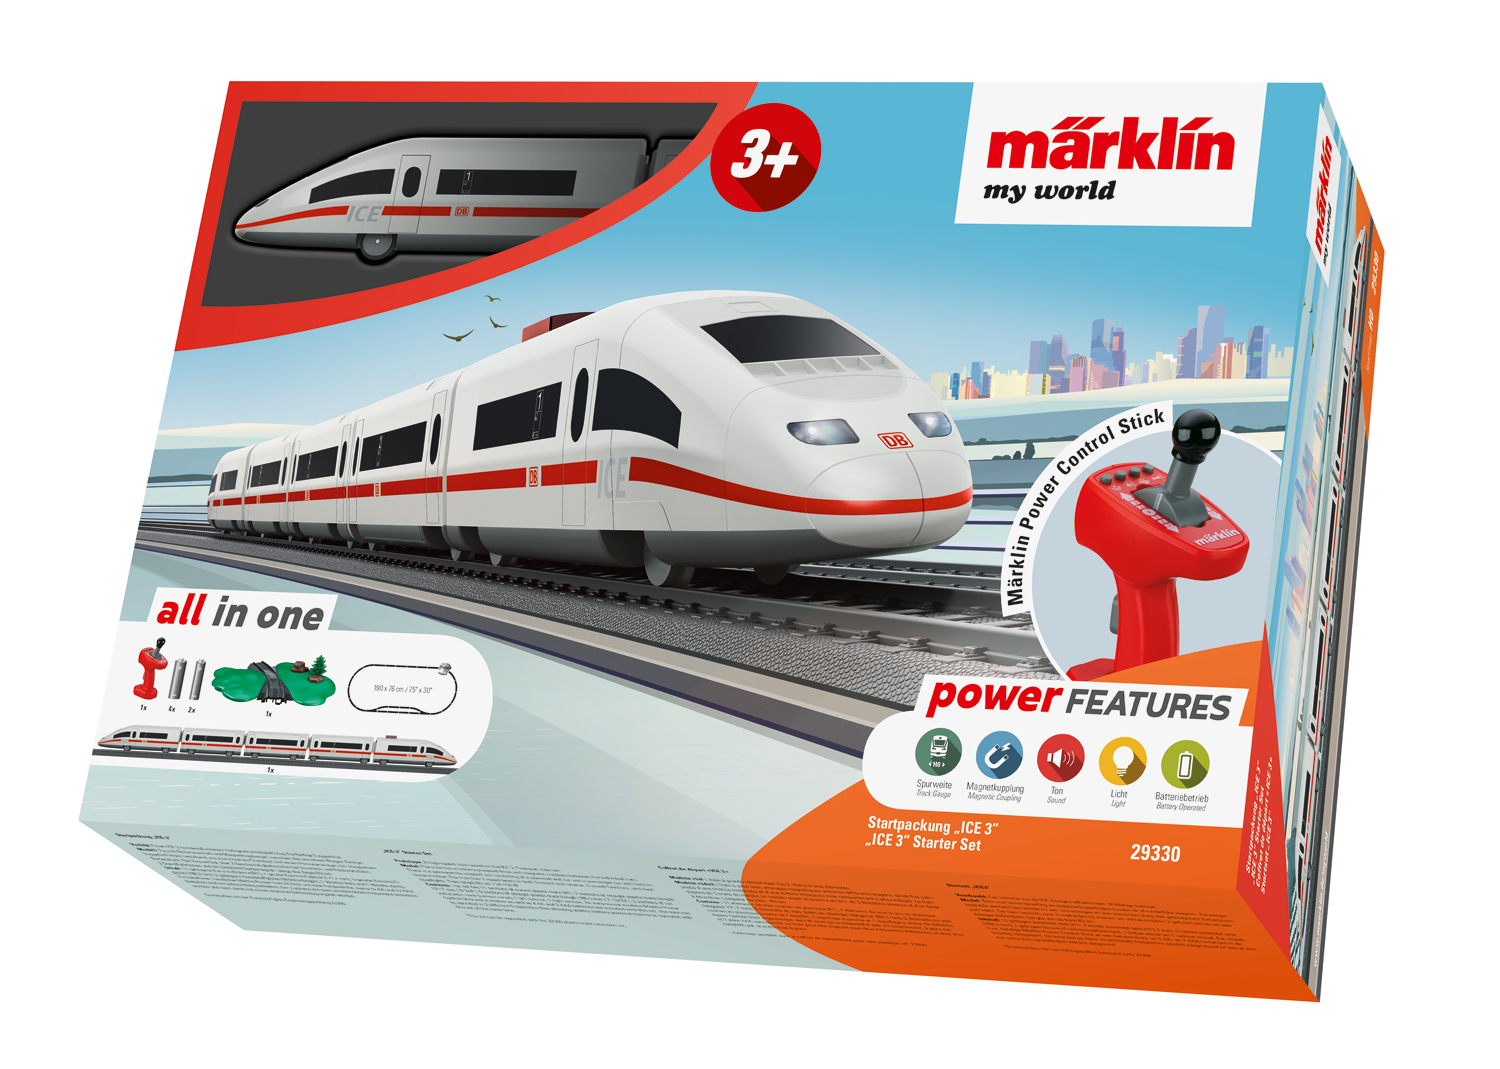 29330 Marklin HO My world Start Set completo Treno Rapido ICE scala 1:87